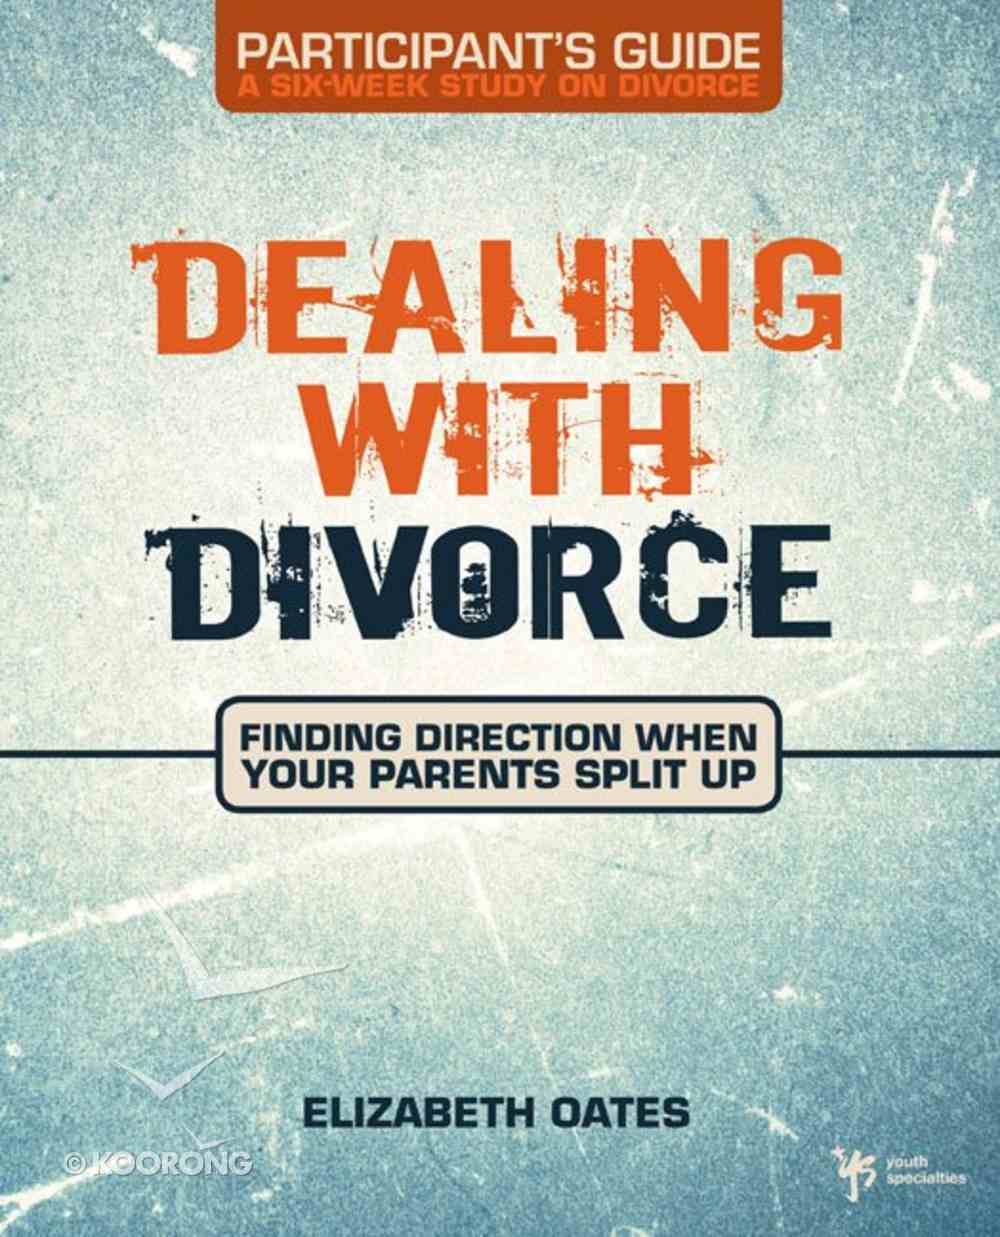 Dealing With Divorce (Student's Guide) eBook